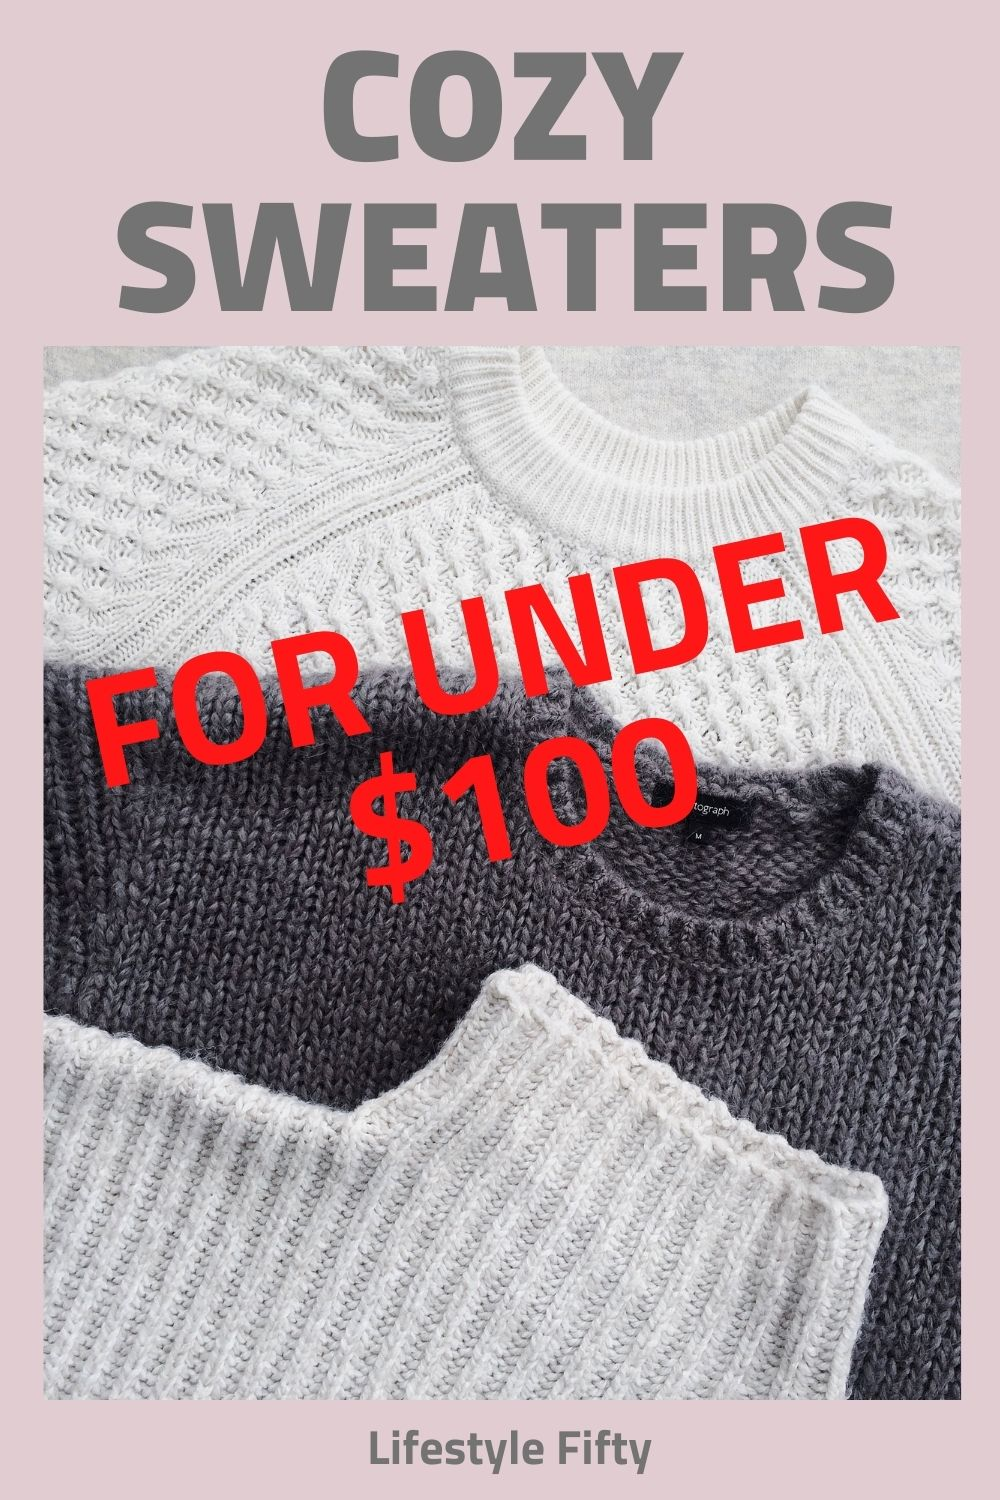 Sweaters laid flat and a text overlay for the post cosy sweater favourites.